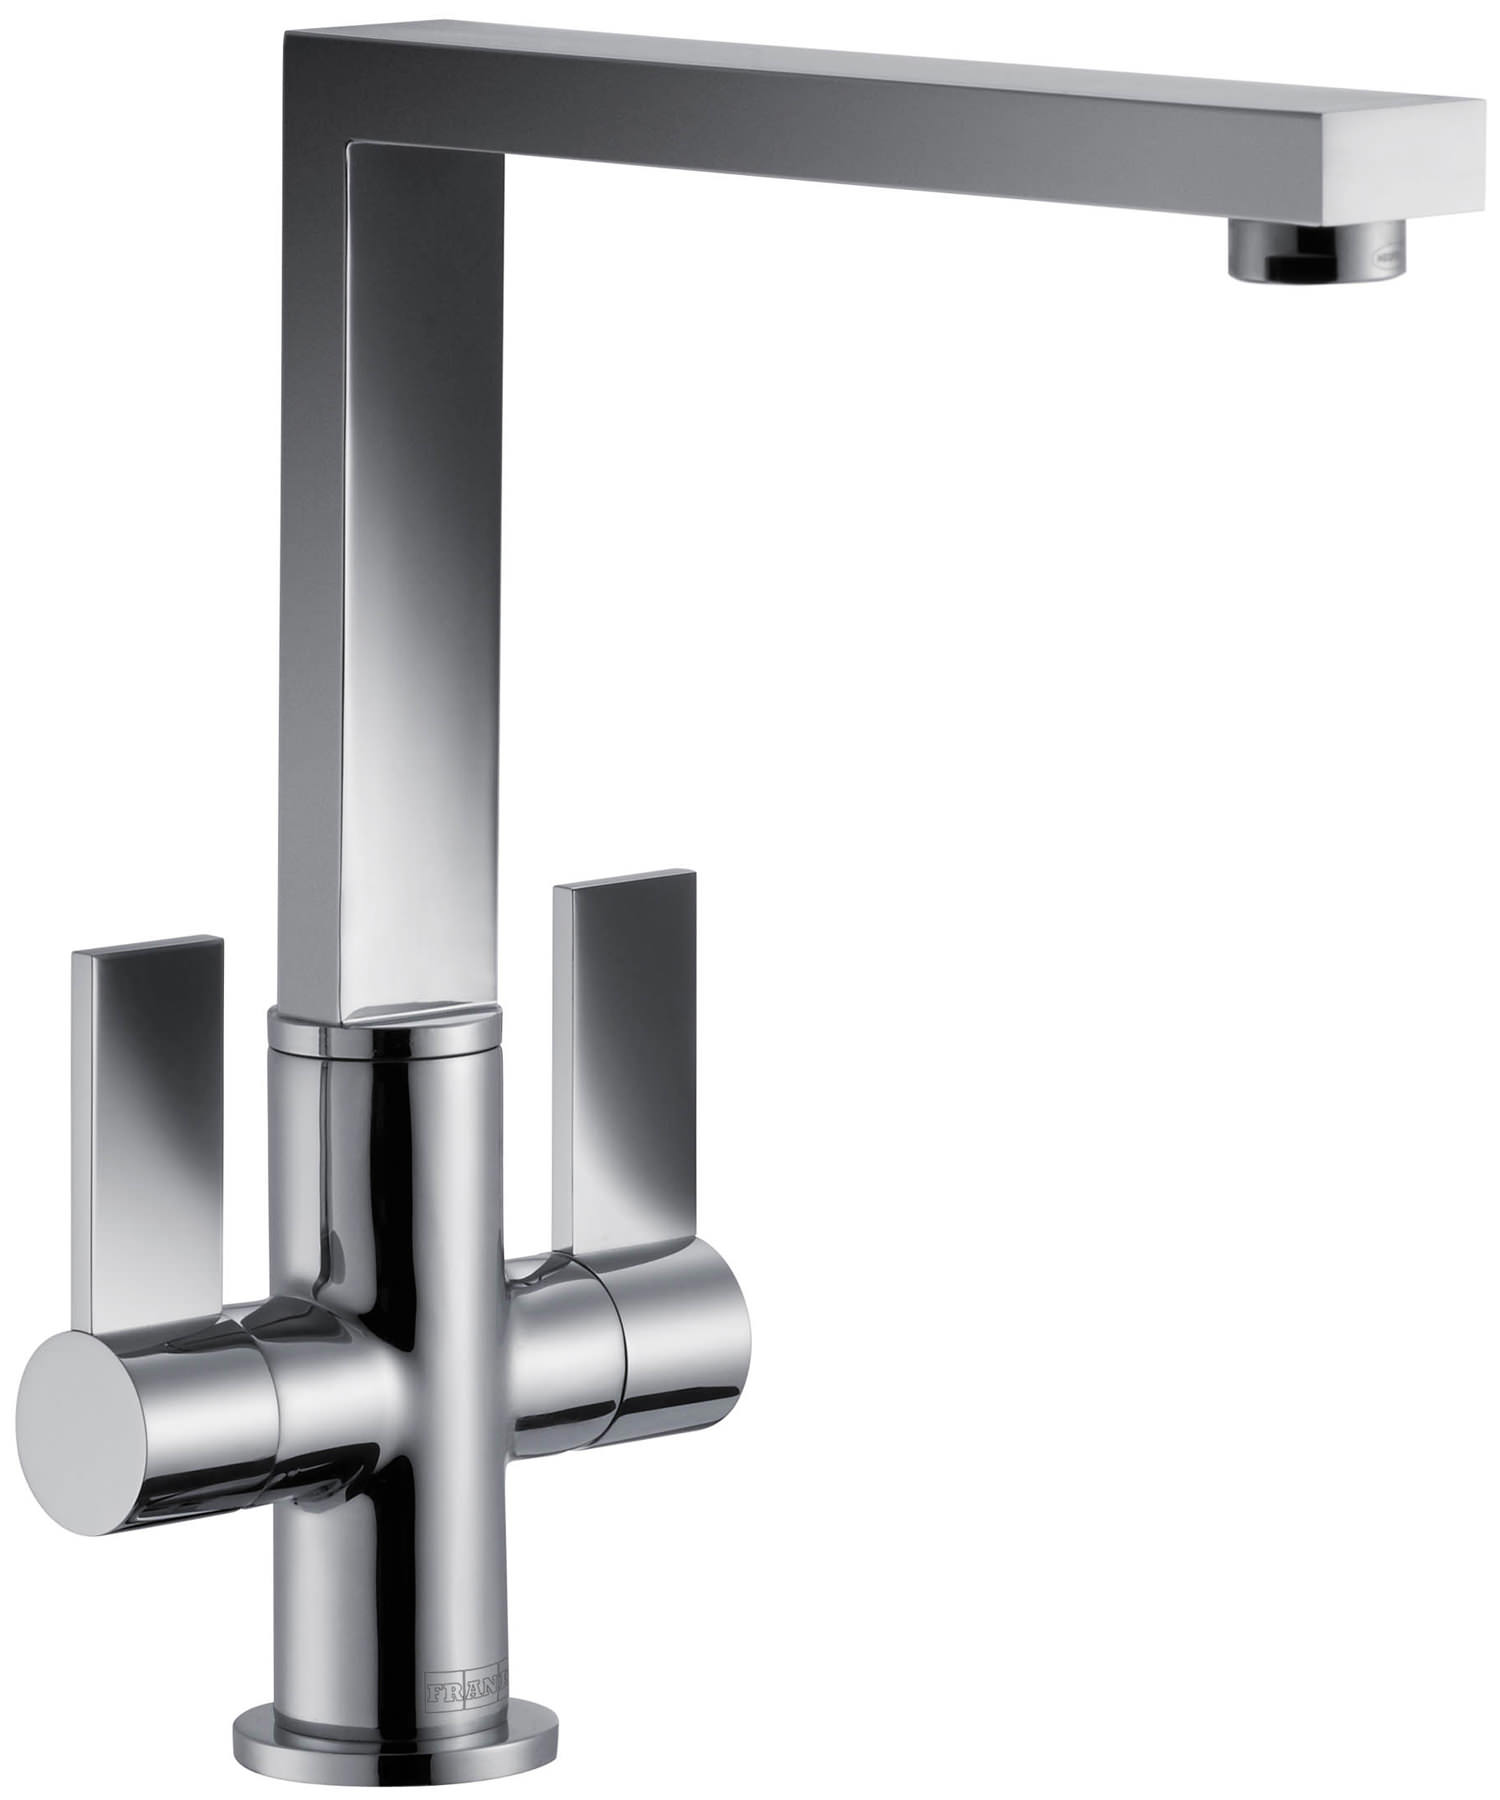 Franke Sink Mixer Taps : ... taps sink mixer taps brand new franke bern chrome kitchen sink mixer